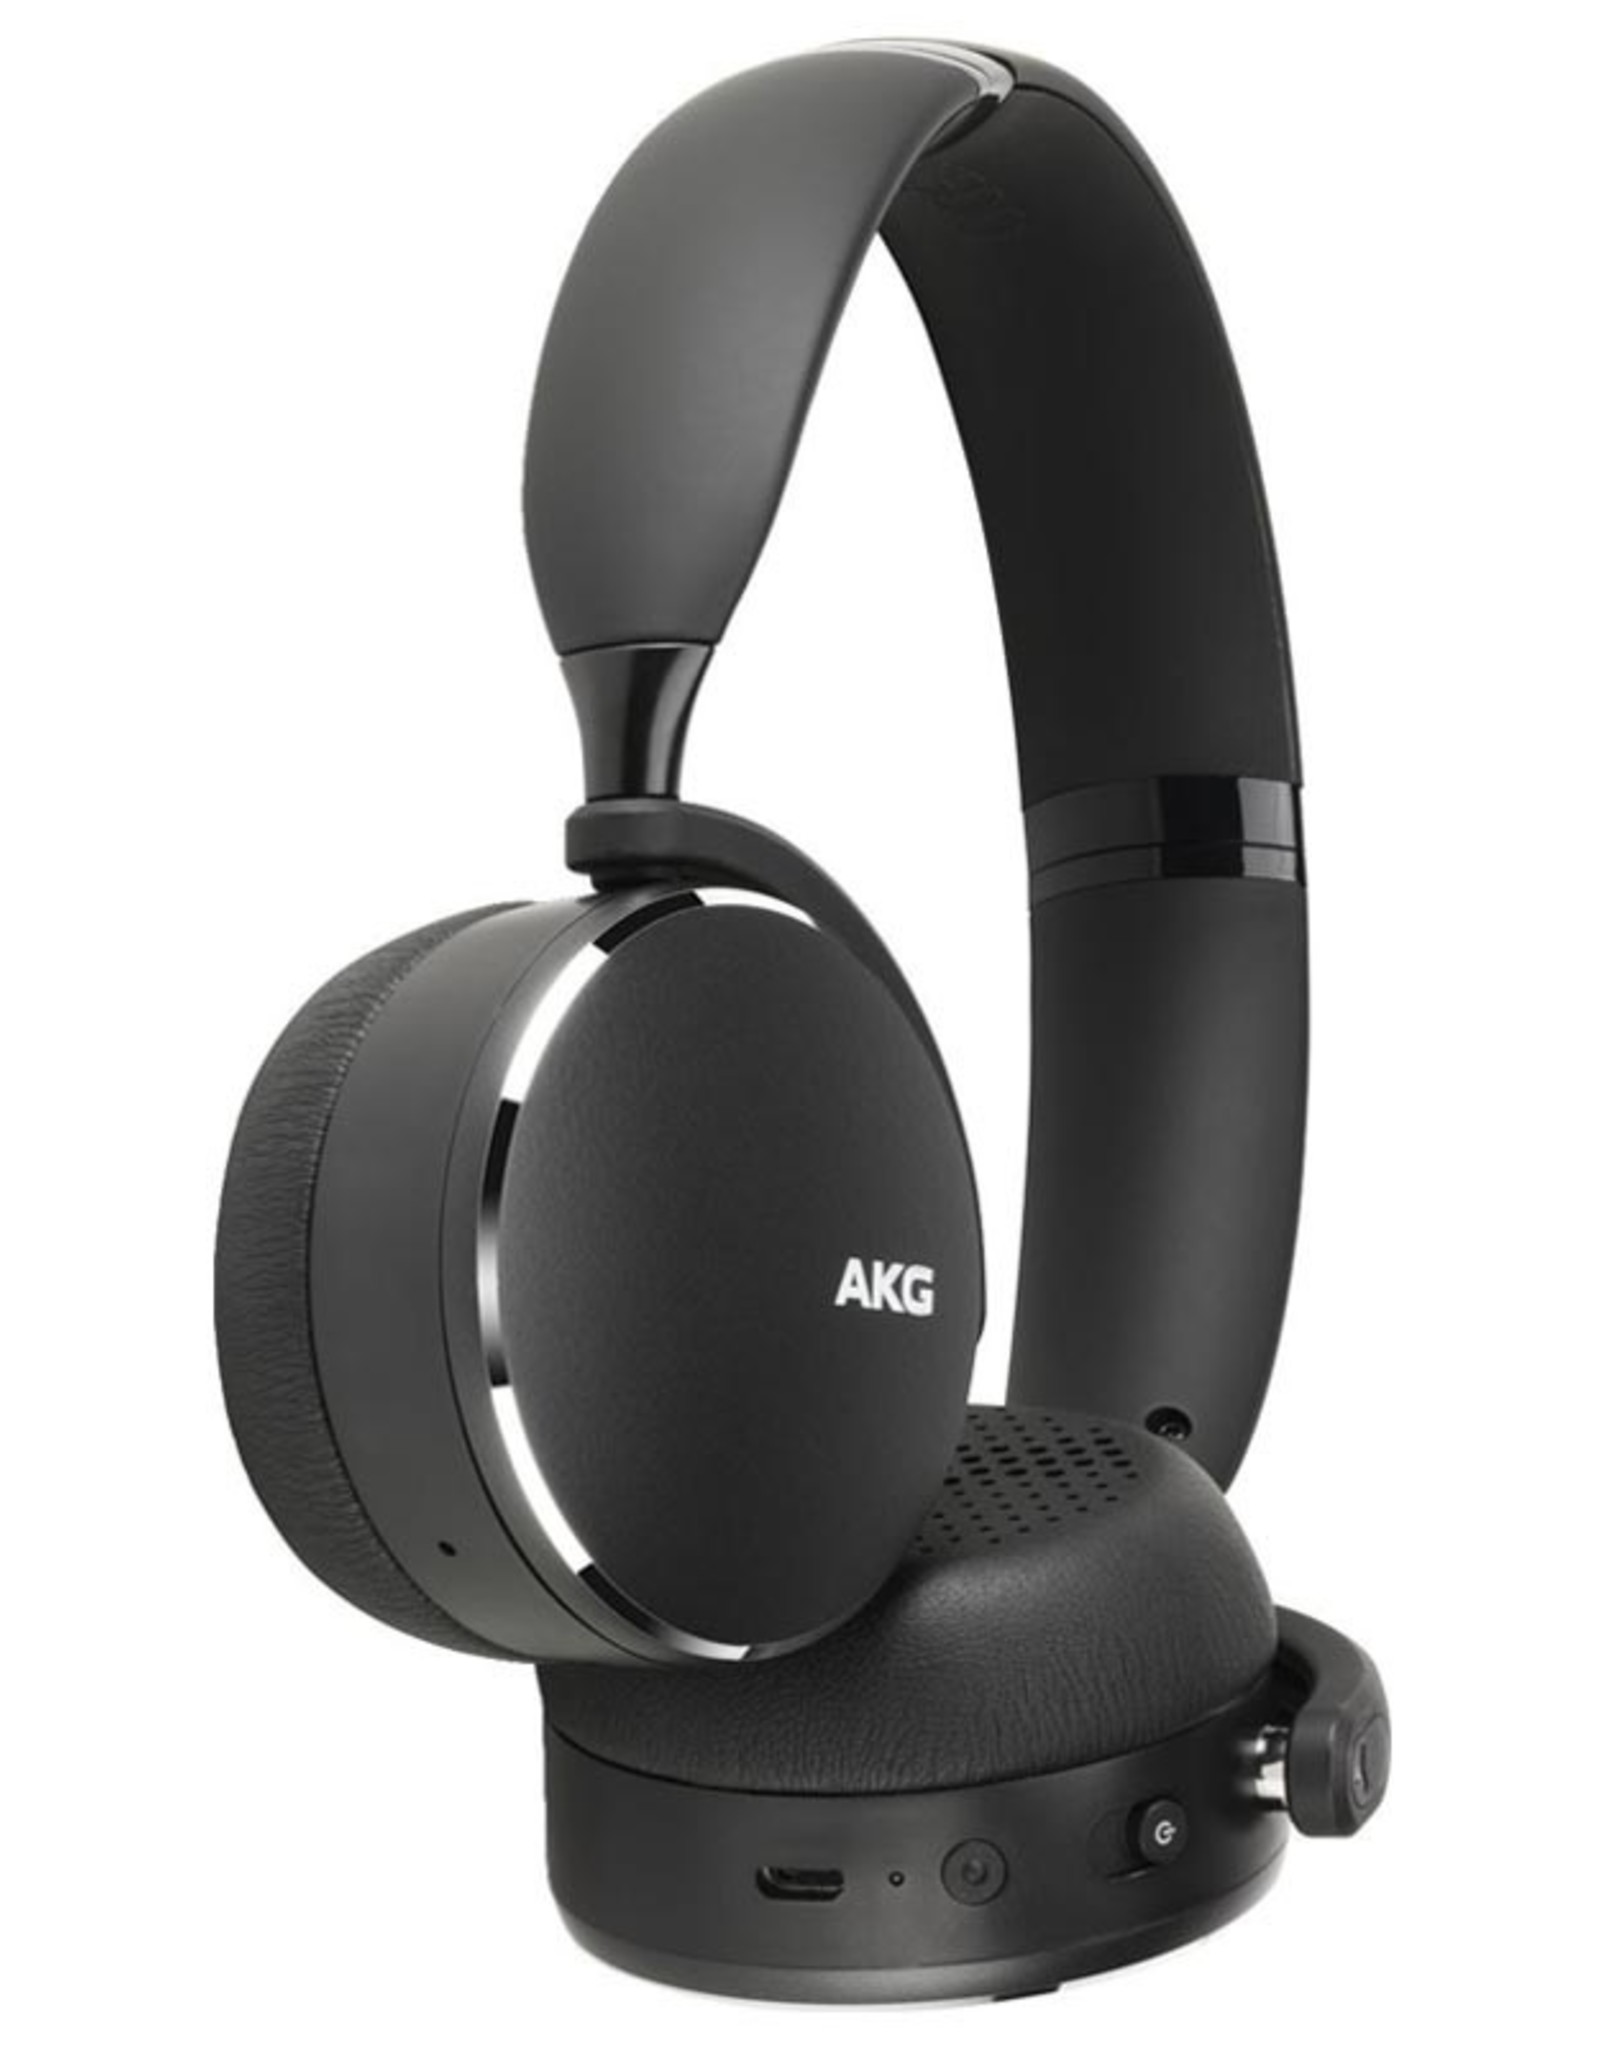 AKG AKG Y500 | Headphones with mic - on-ear - Bluetooth - wireless - black